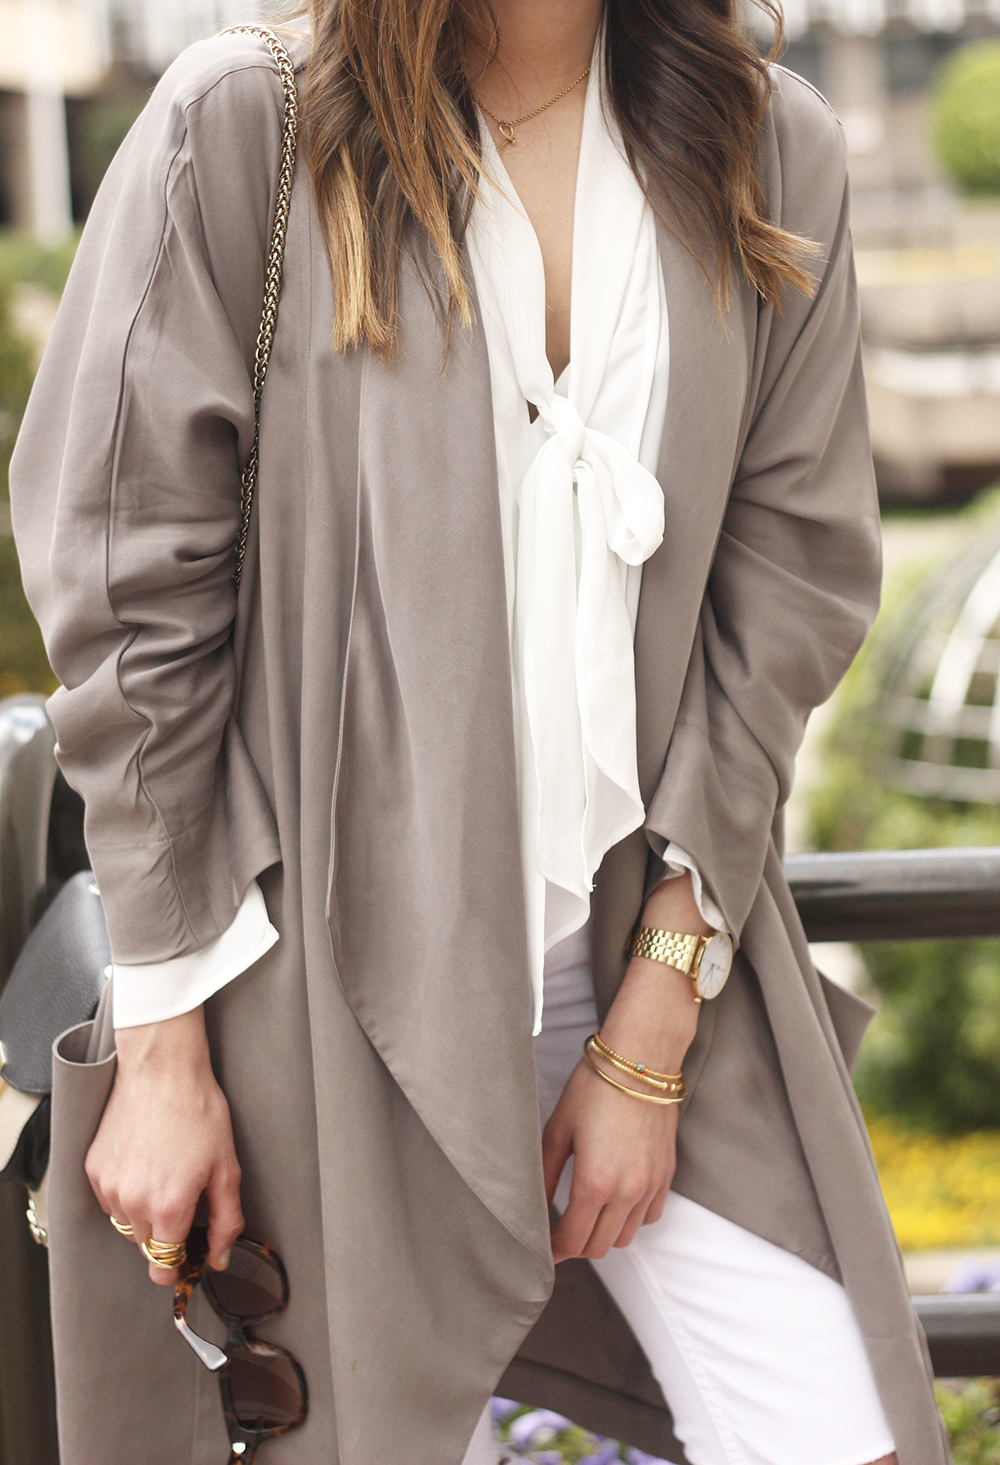 grey and white outfit trench spring streetstyle sunnies nude heels ripped jeans25